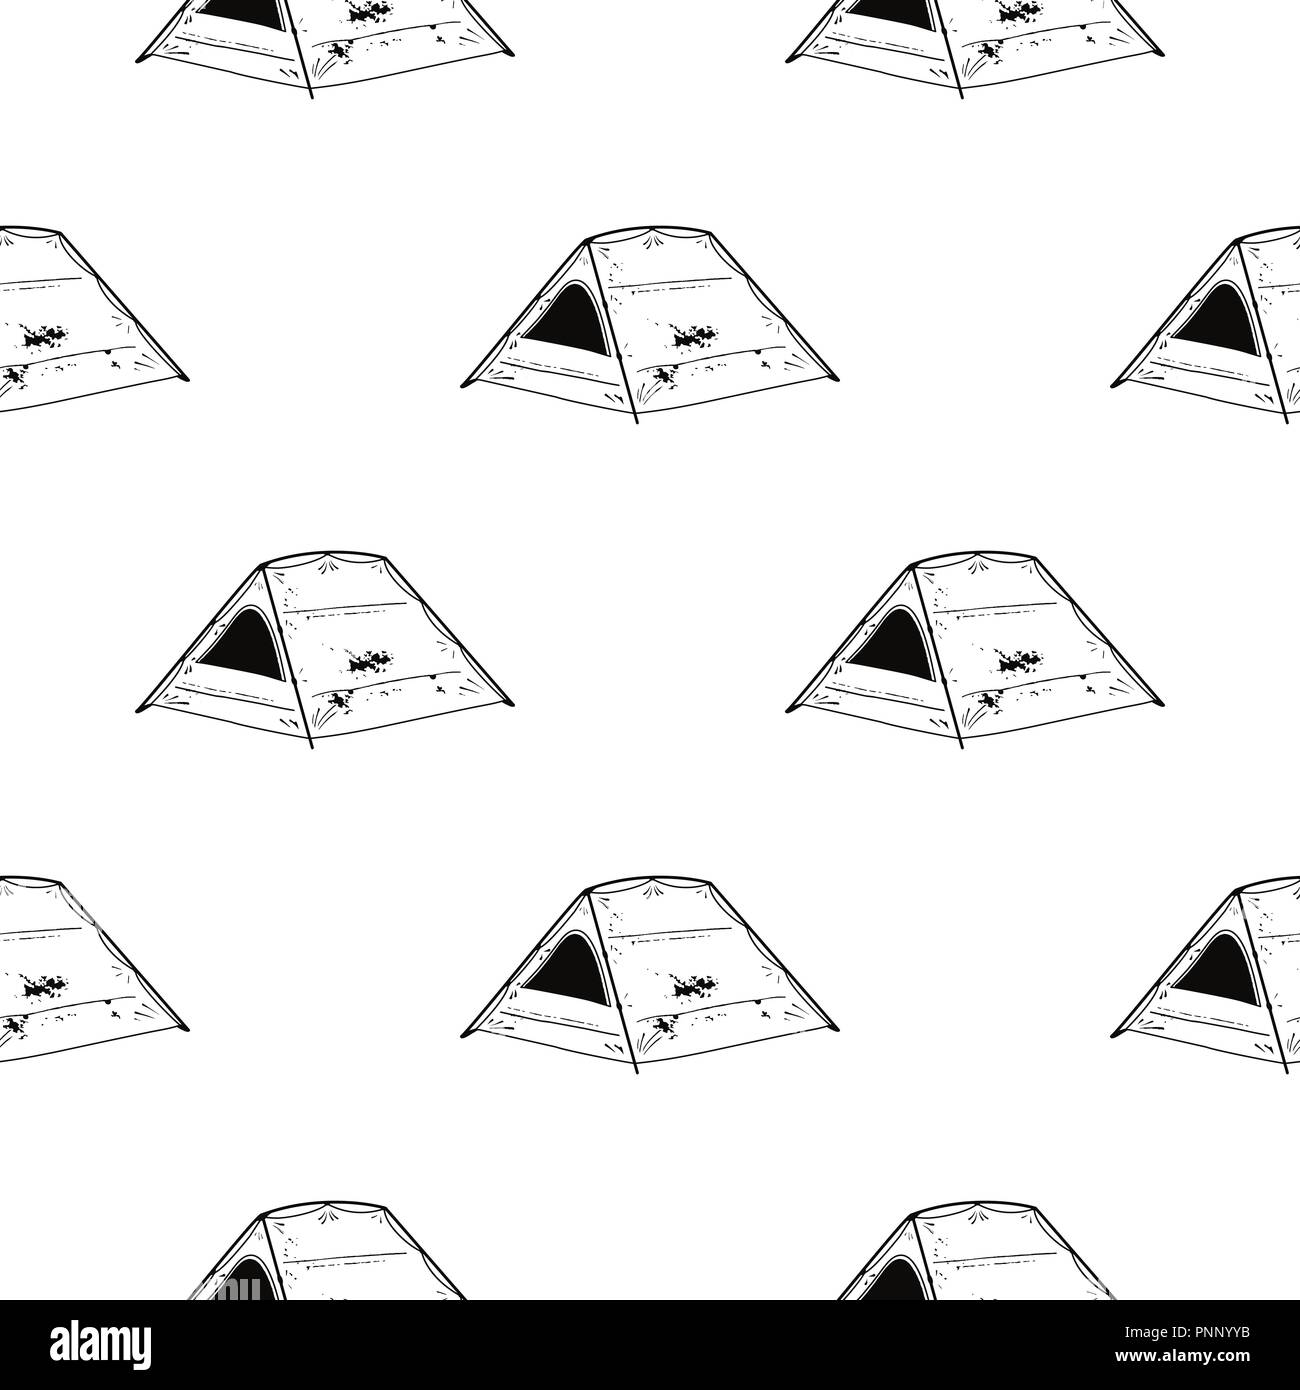 Line art Tent seamless pattern. Silhouette distressed style. Outdoor adventure wallpaper background. Stock vector illustration